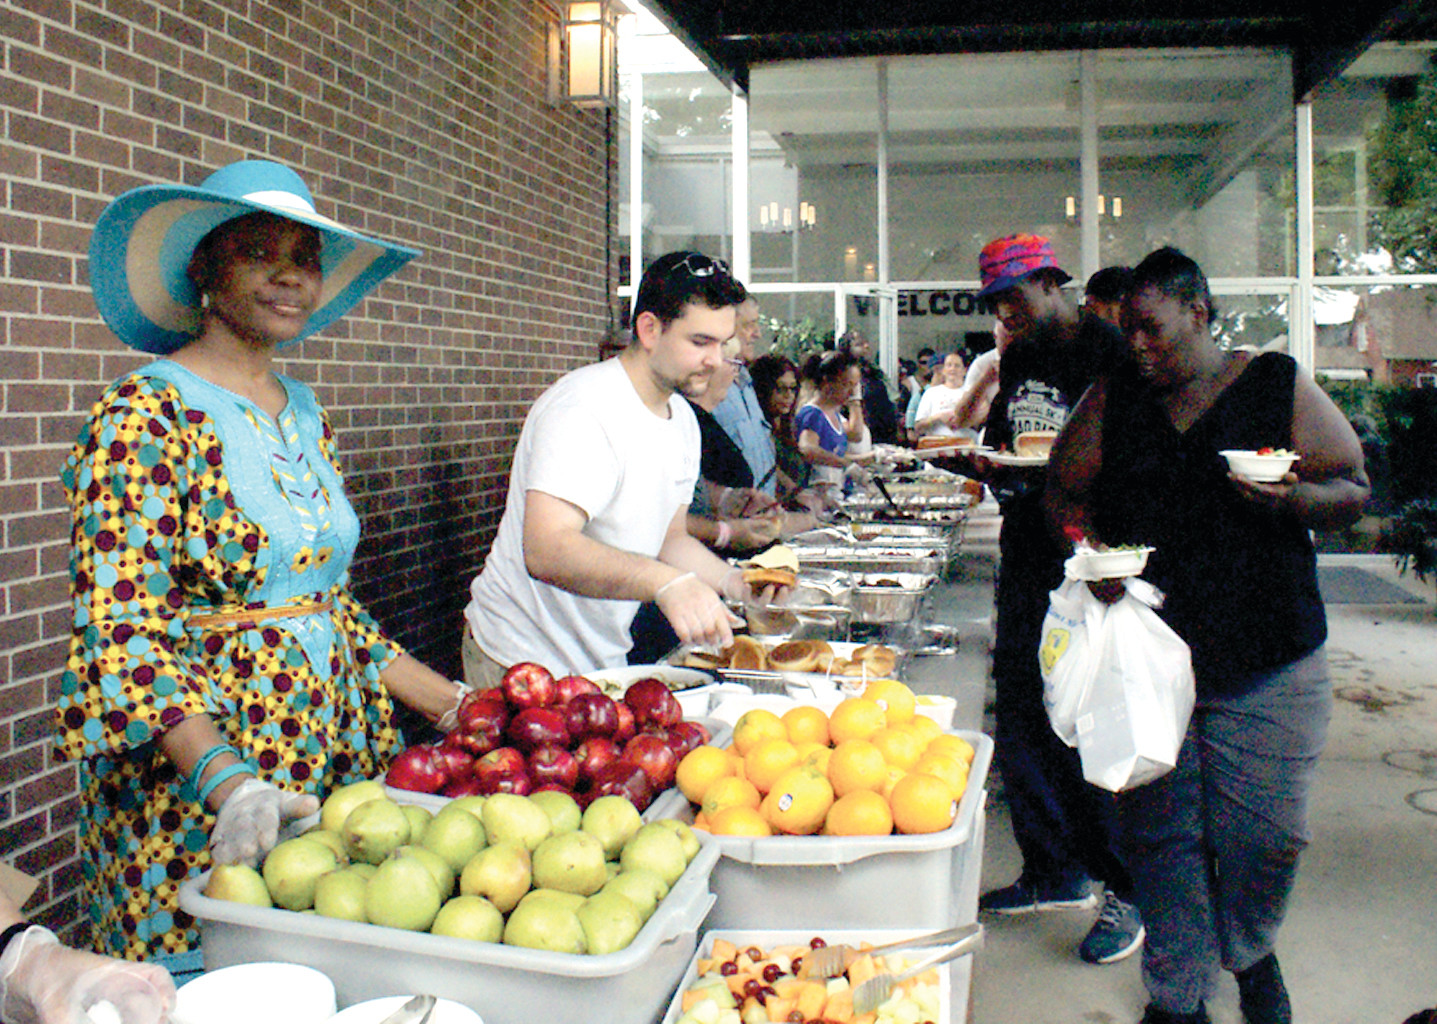 SERVING UP THE GOOD STUFF: Pears and apples were among the foods served on the dessert table to the homeless at Praise Tabernacle Church Sunday.